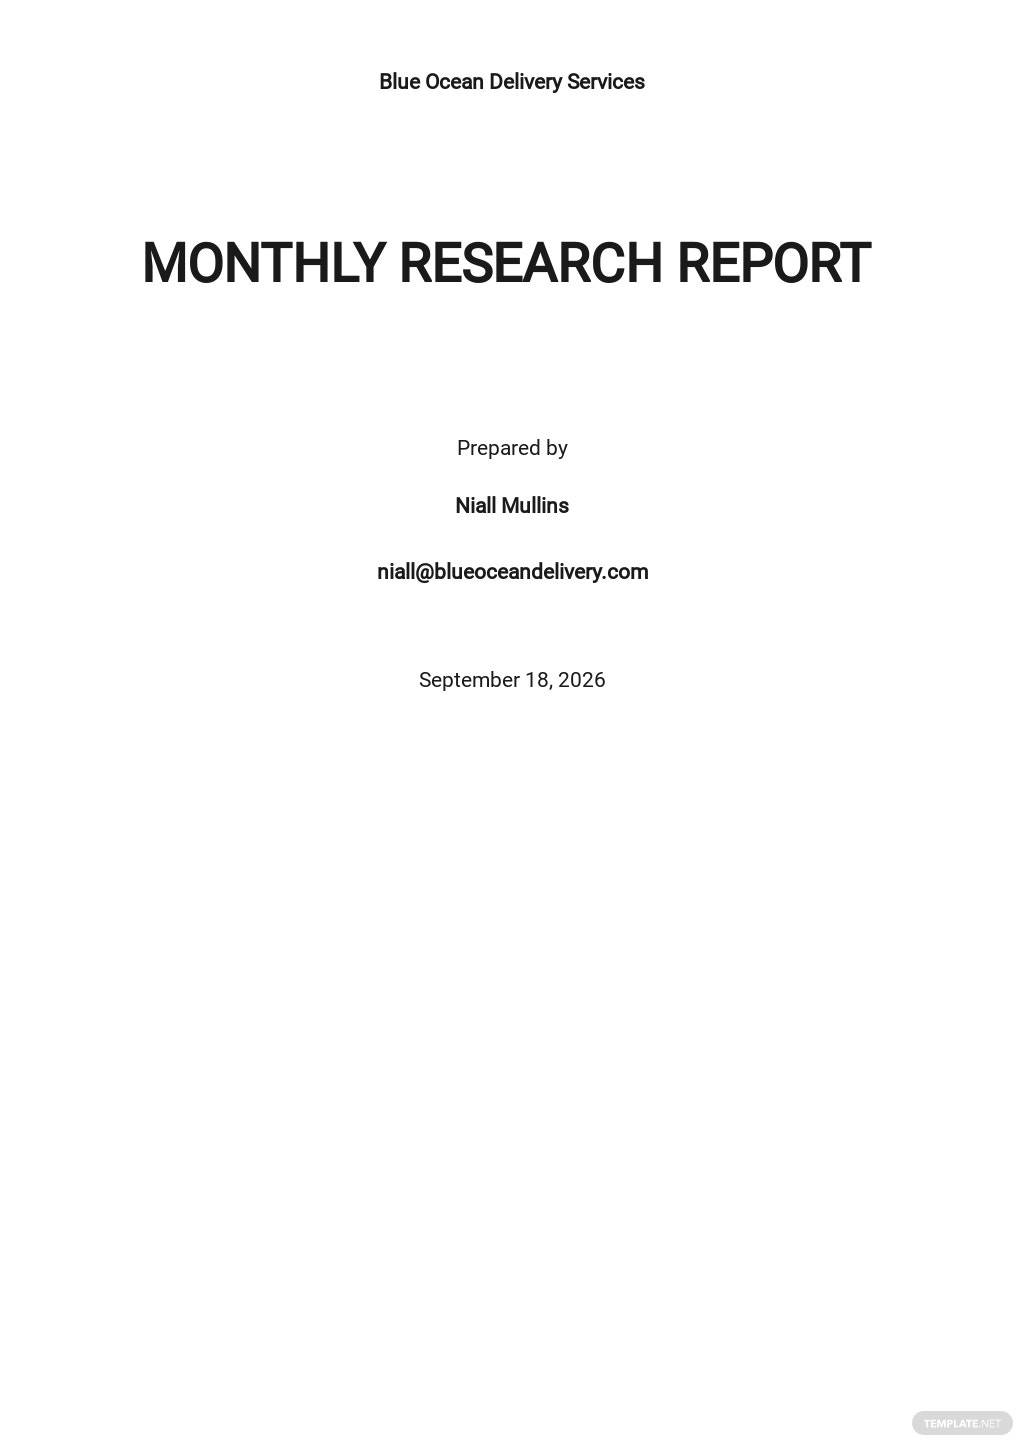 Monthly Research Report Template